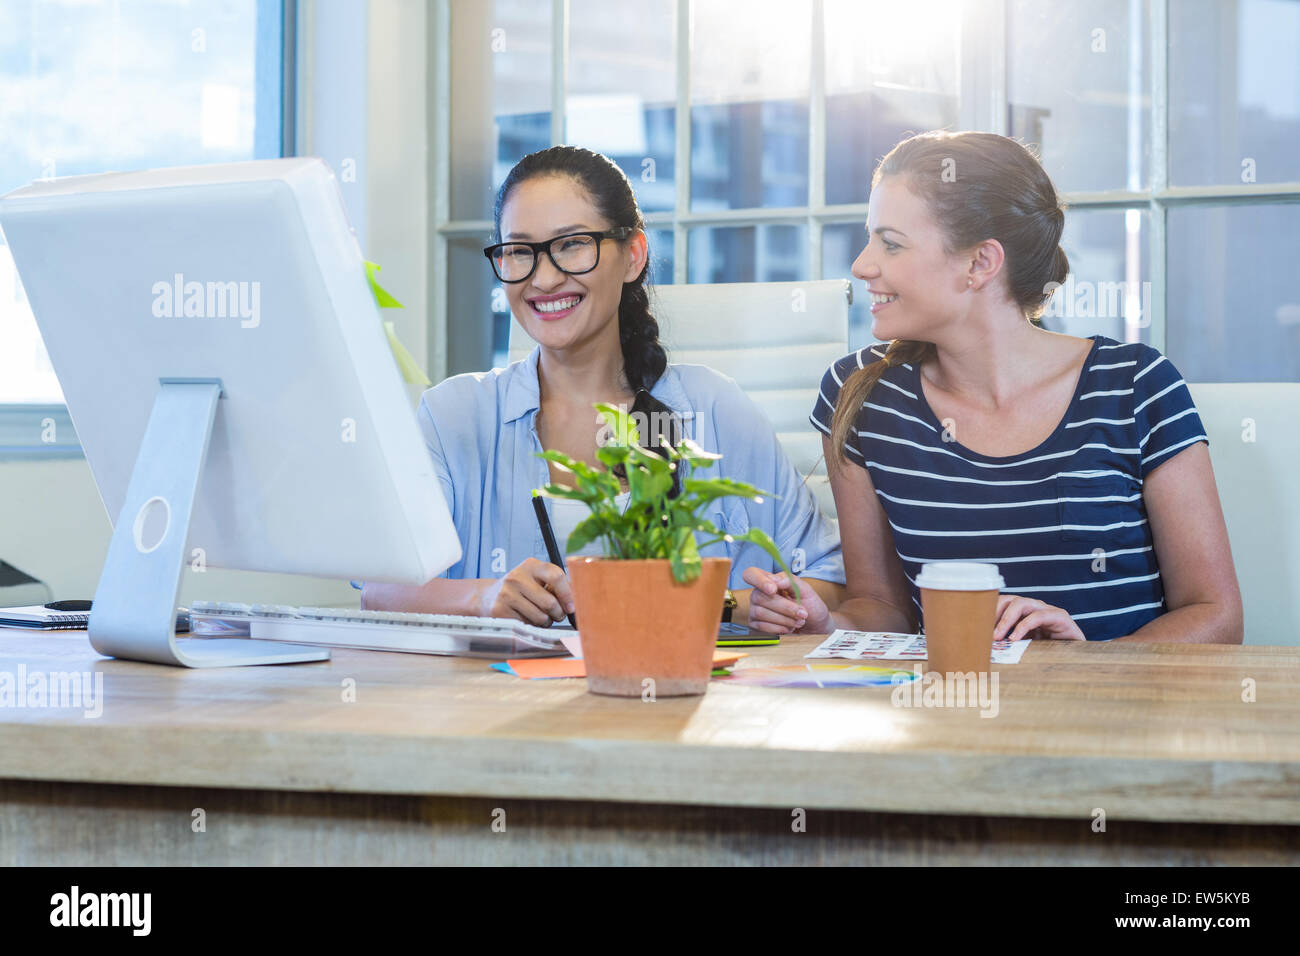 Smiling partners working together with photographs and digitizer - Stock Image